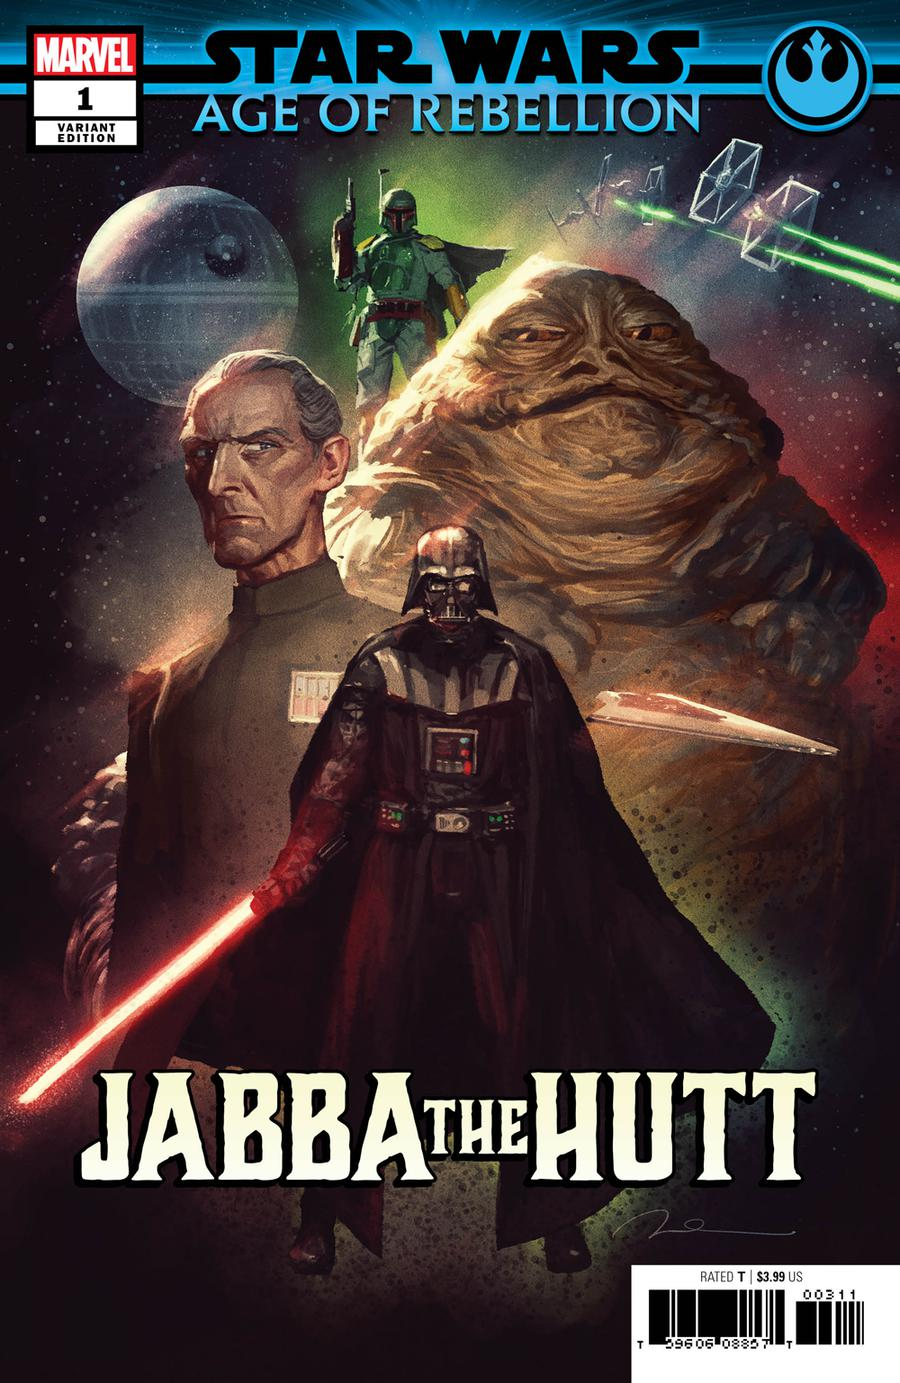 Star Wars Age Of Rebellion Jabba The Hutt #1 Cover C Variant Gerald Parel Villains Cover